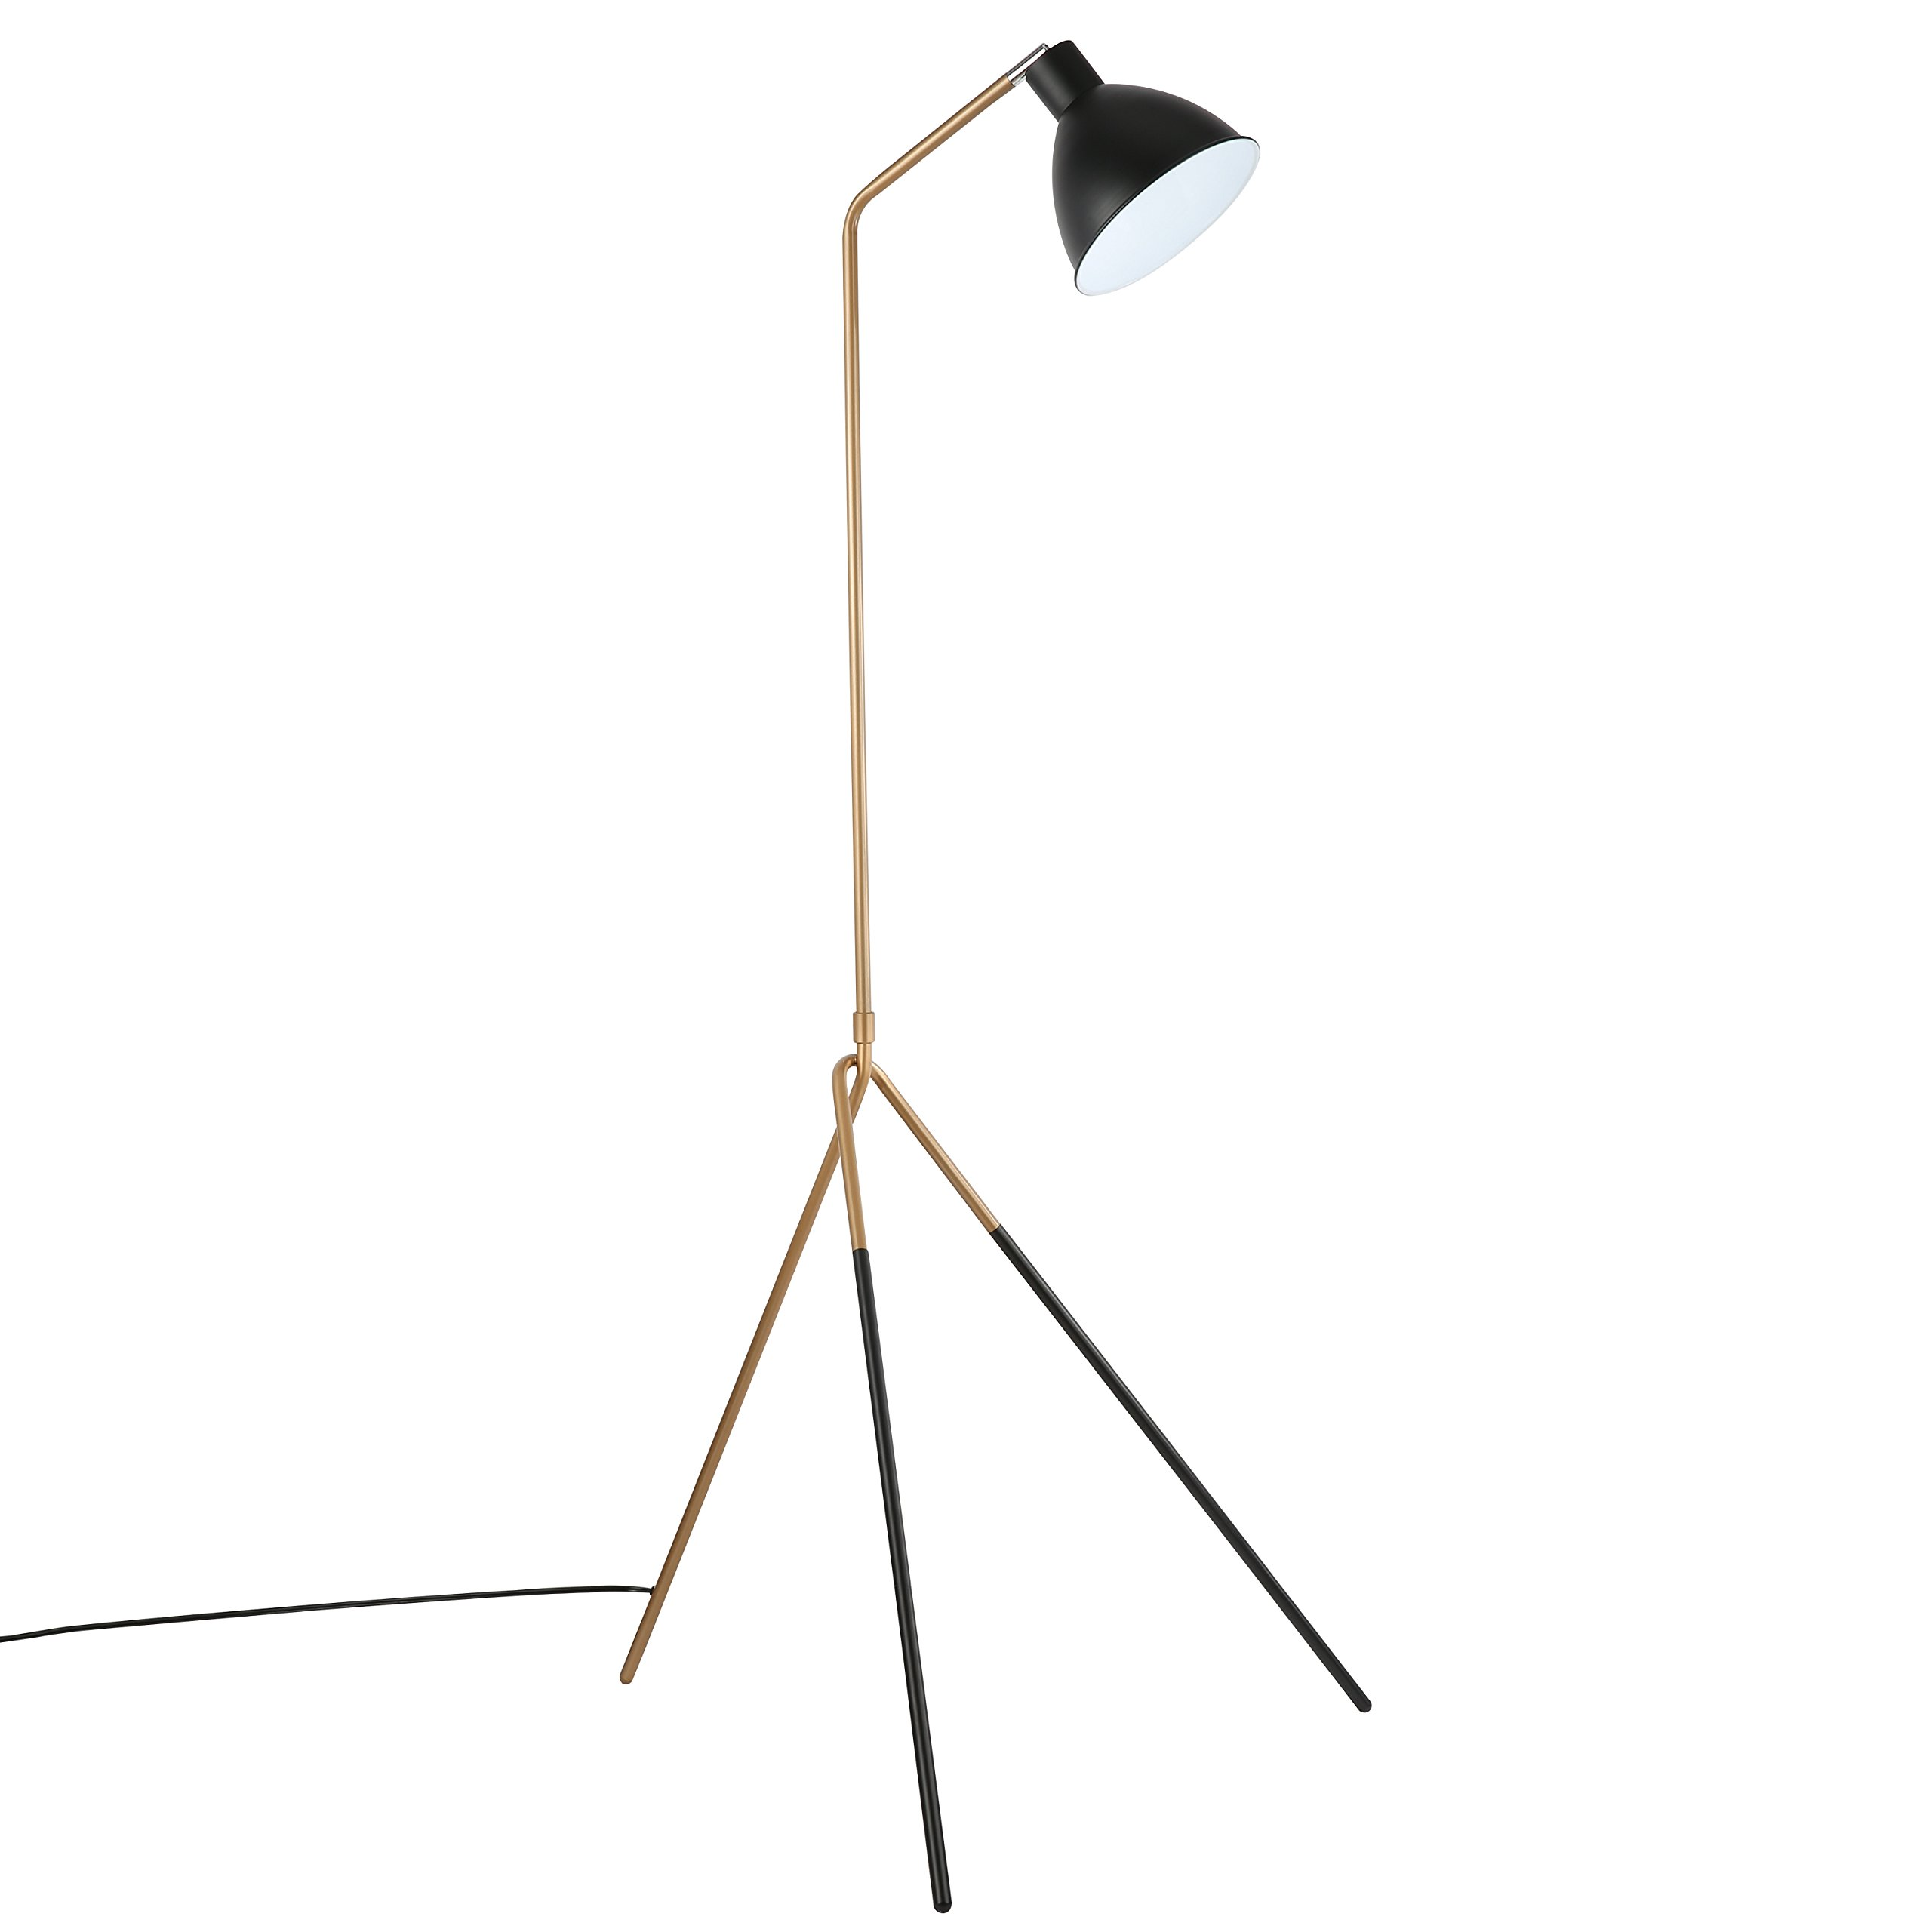 Light Society Mastise Grasshopper Floor Lamp, Matte Black and Gold Finish, Mid Century Modern Industrial Style (LS-F232-BKGD)